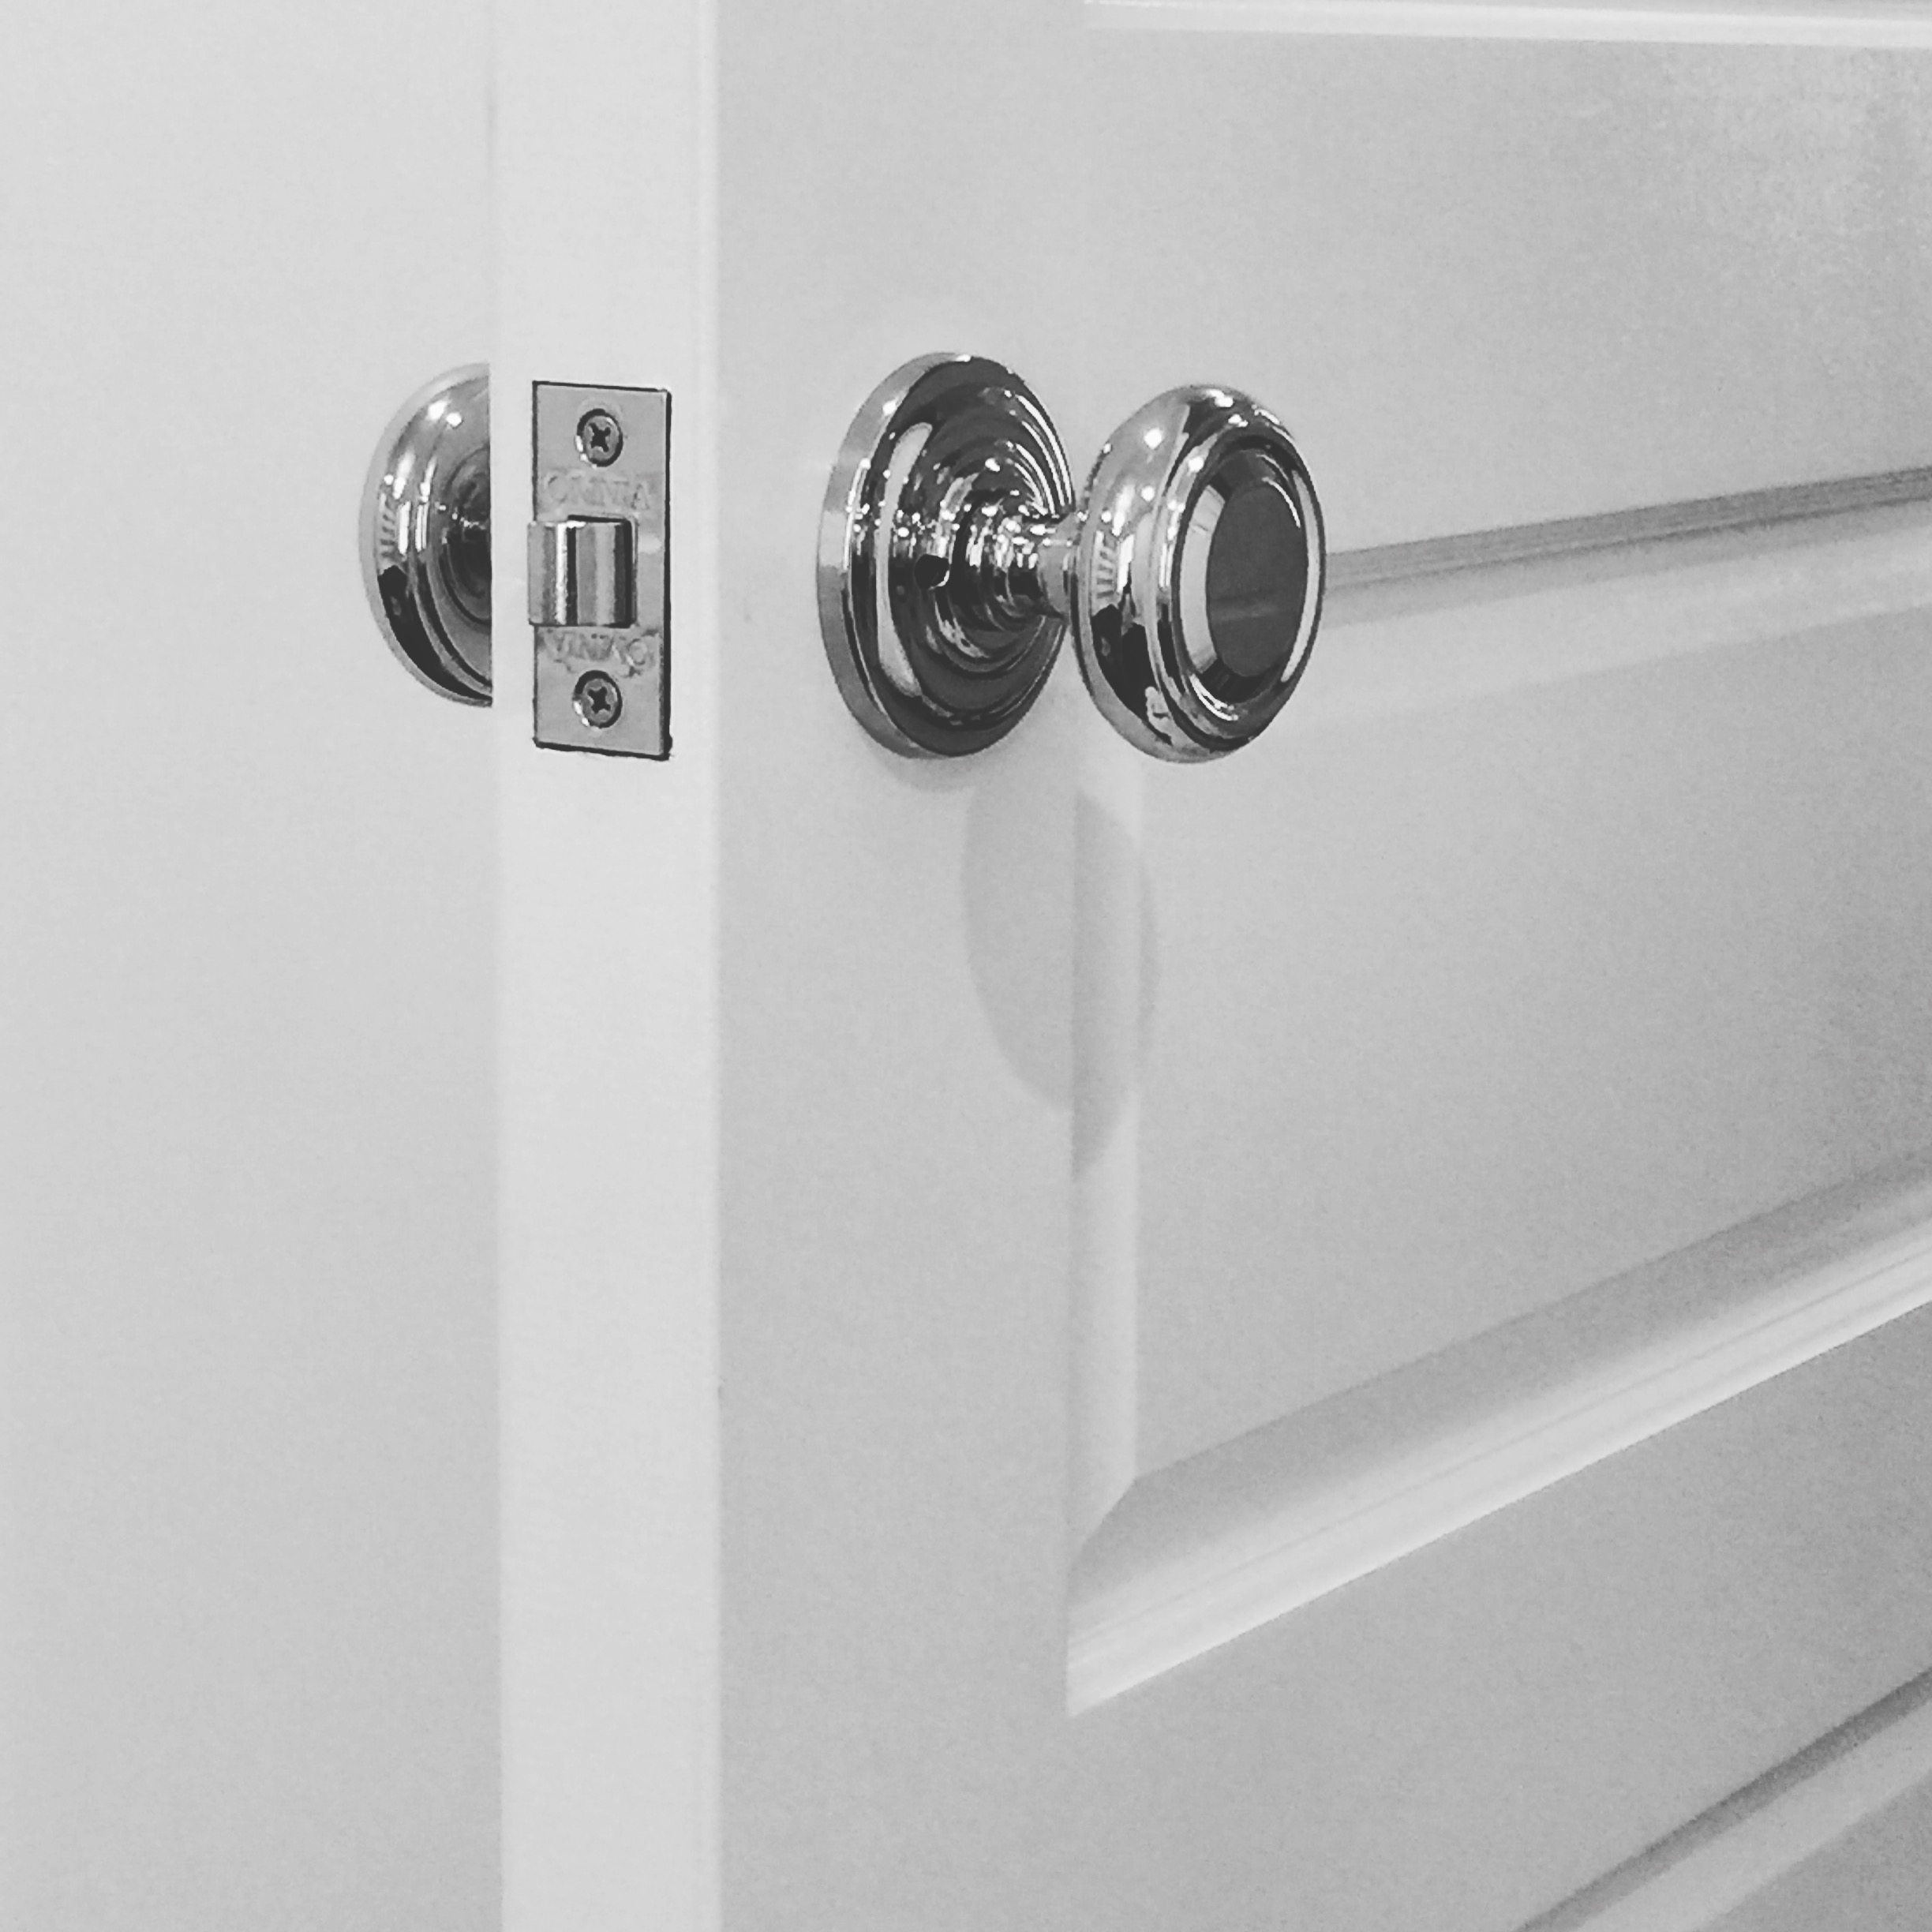 Door Hardware from Omnia